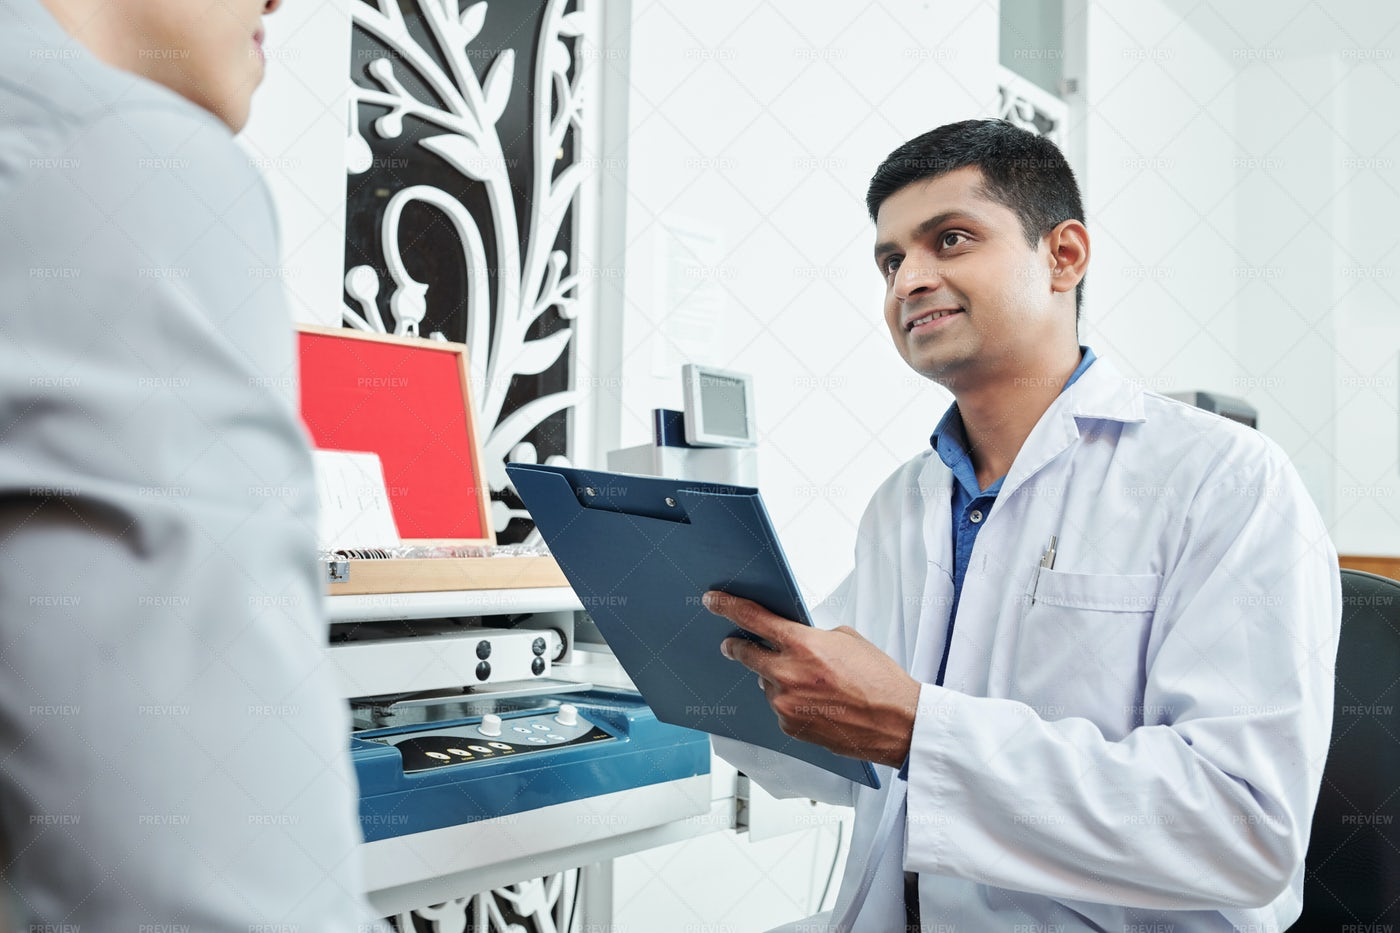 Doctor With Medical Card At Office: Stock Photos